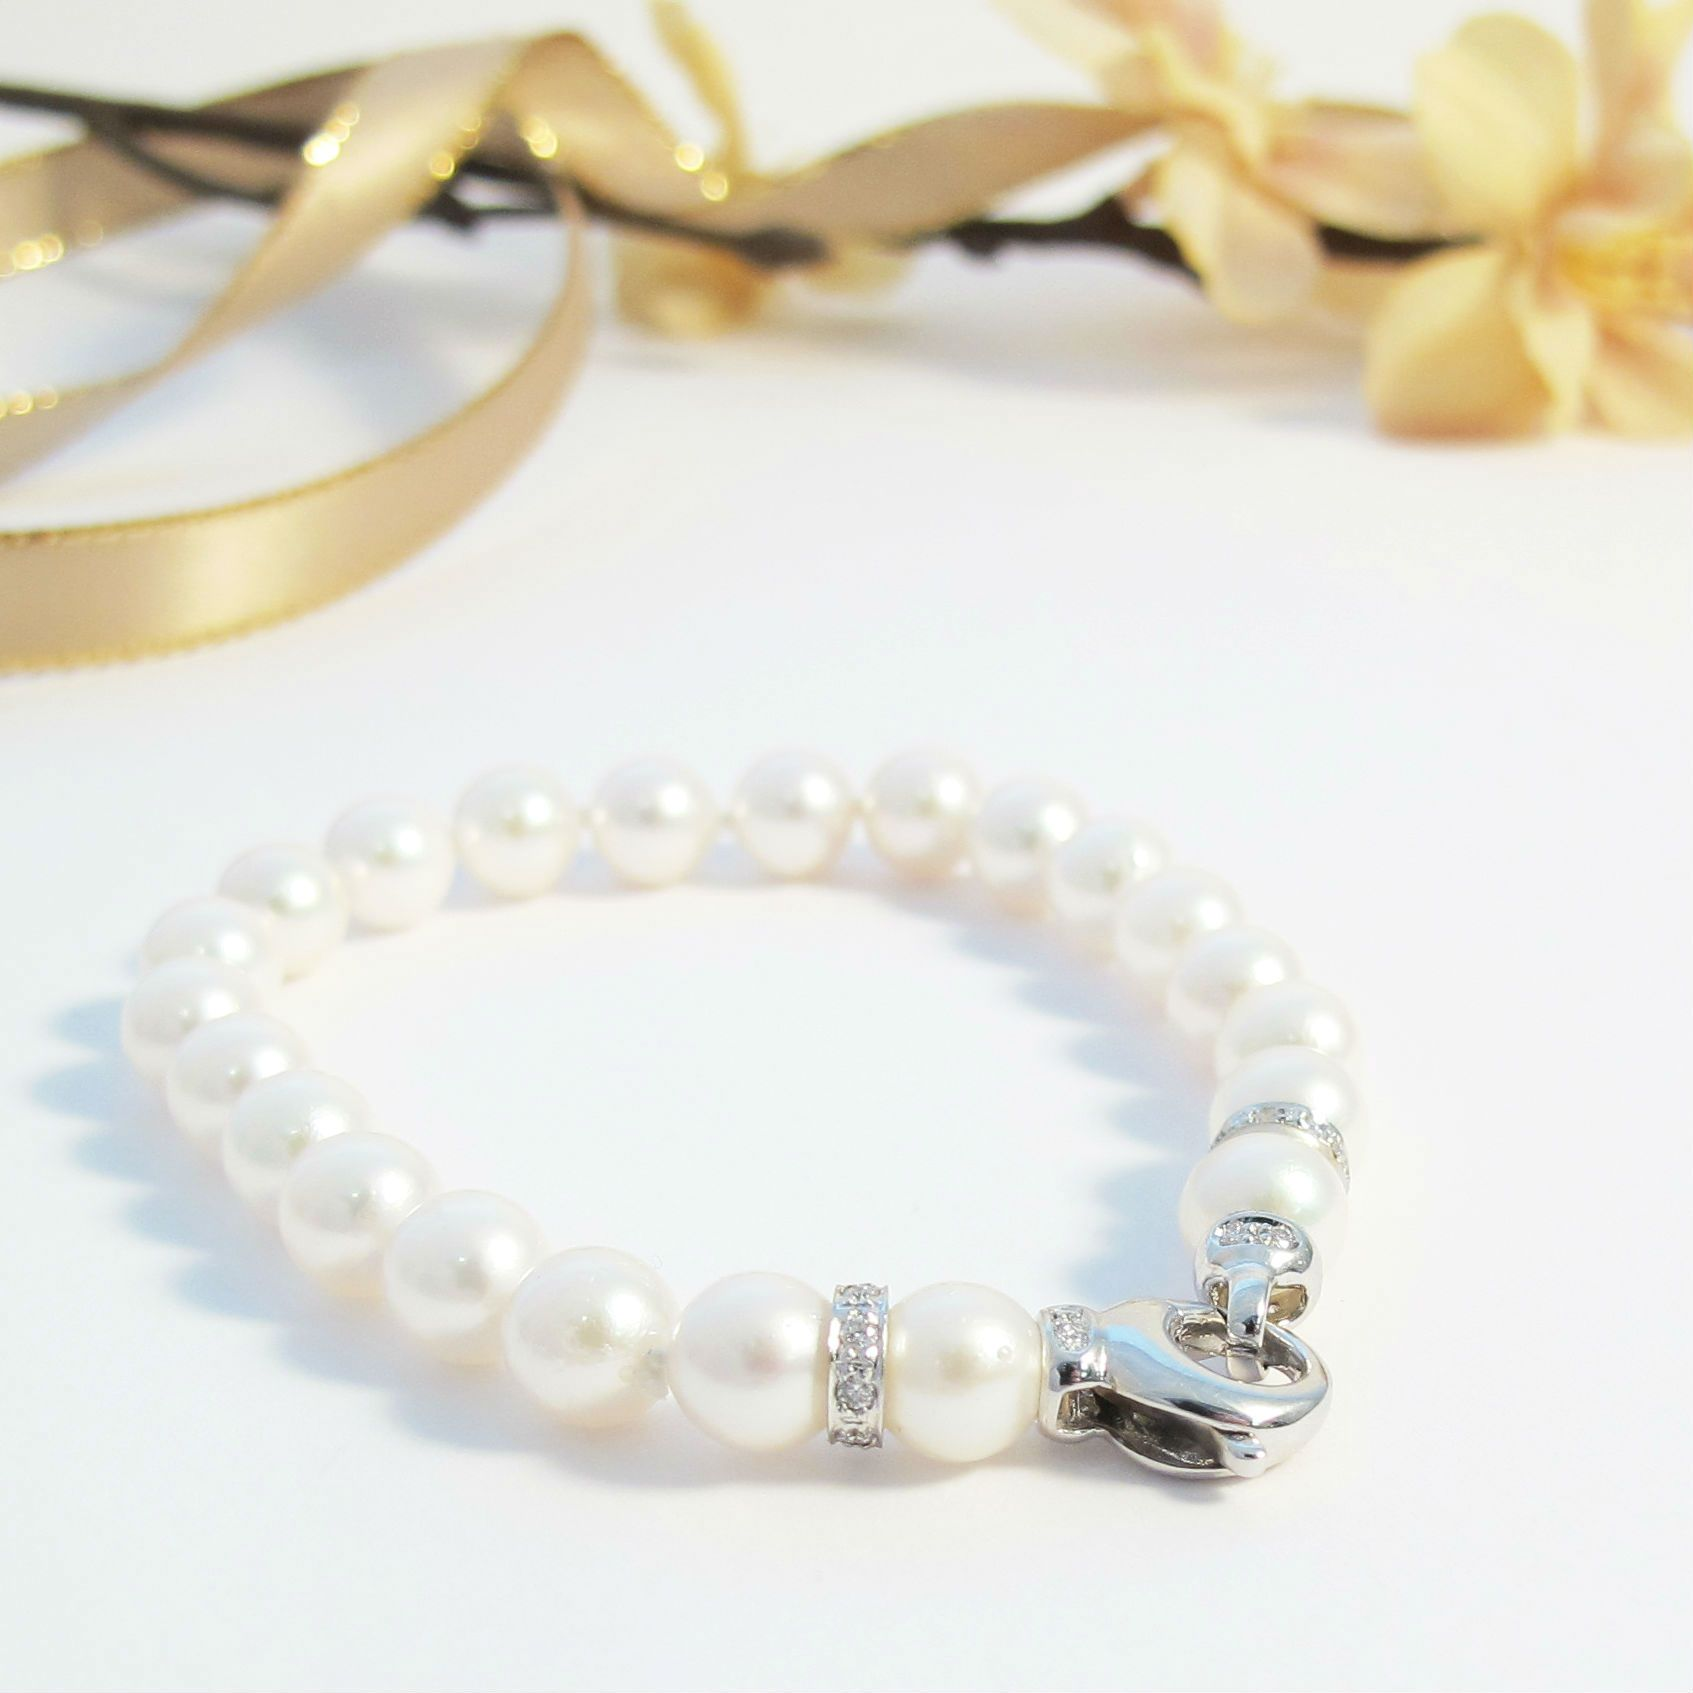 mothers pin otis mom mother gift bracelet bow for dainty card bride jewelry b day of wedding the groom